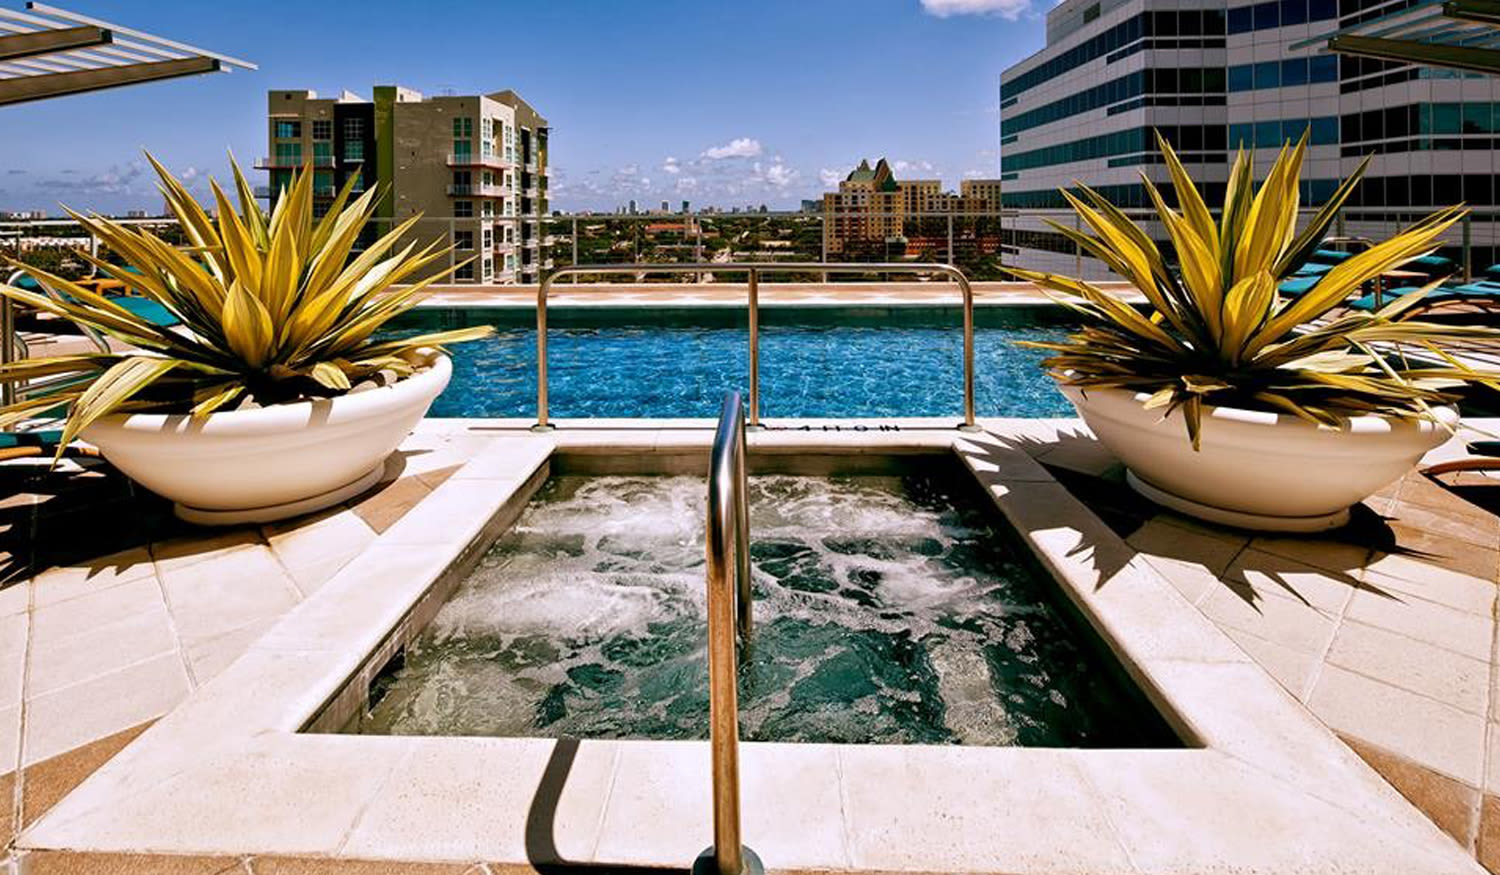 Swimming pool and hot tub at The Exchange Lofts in Fort Lauderdale, Florida